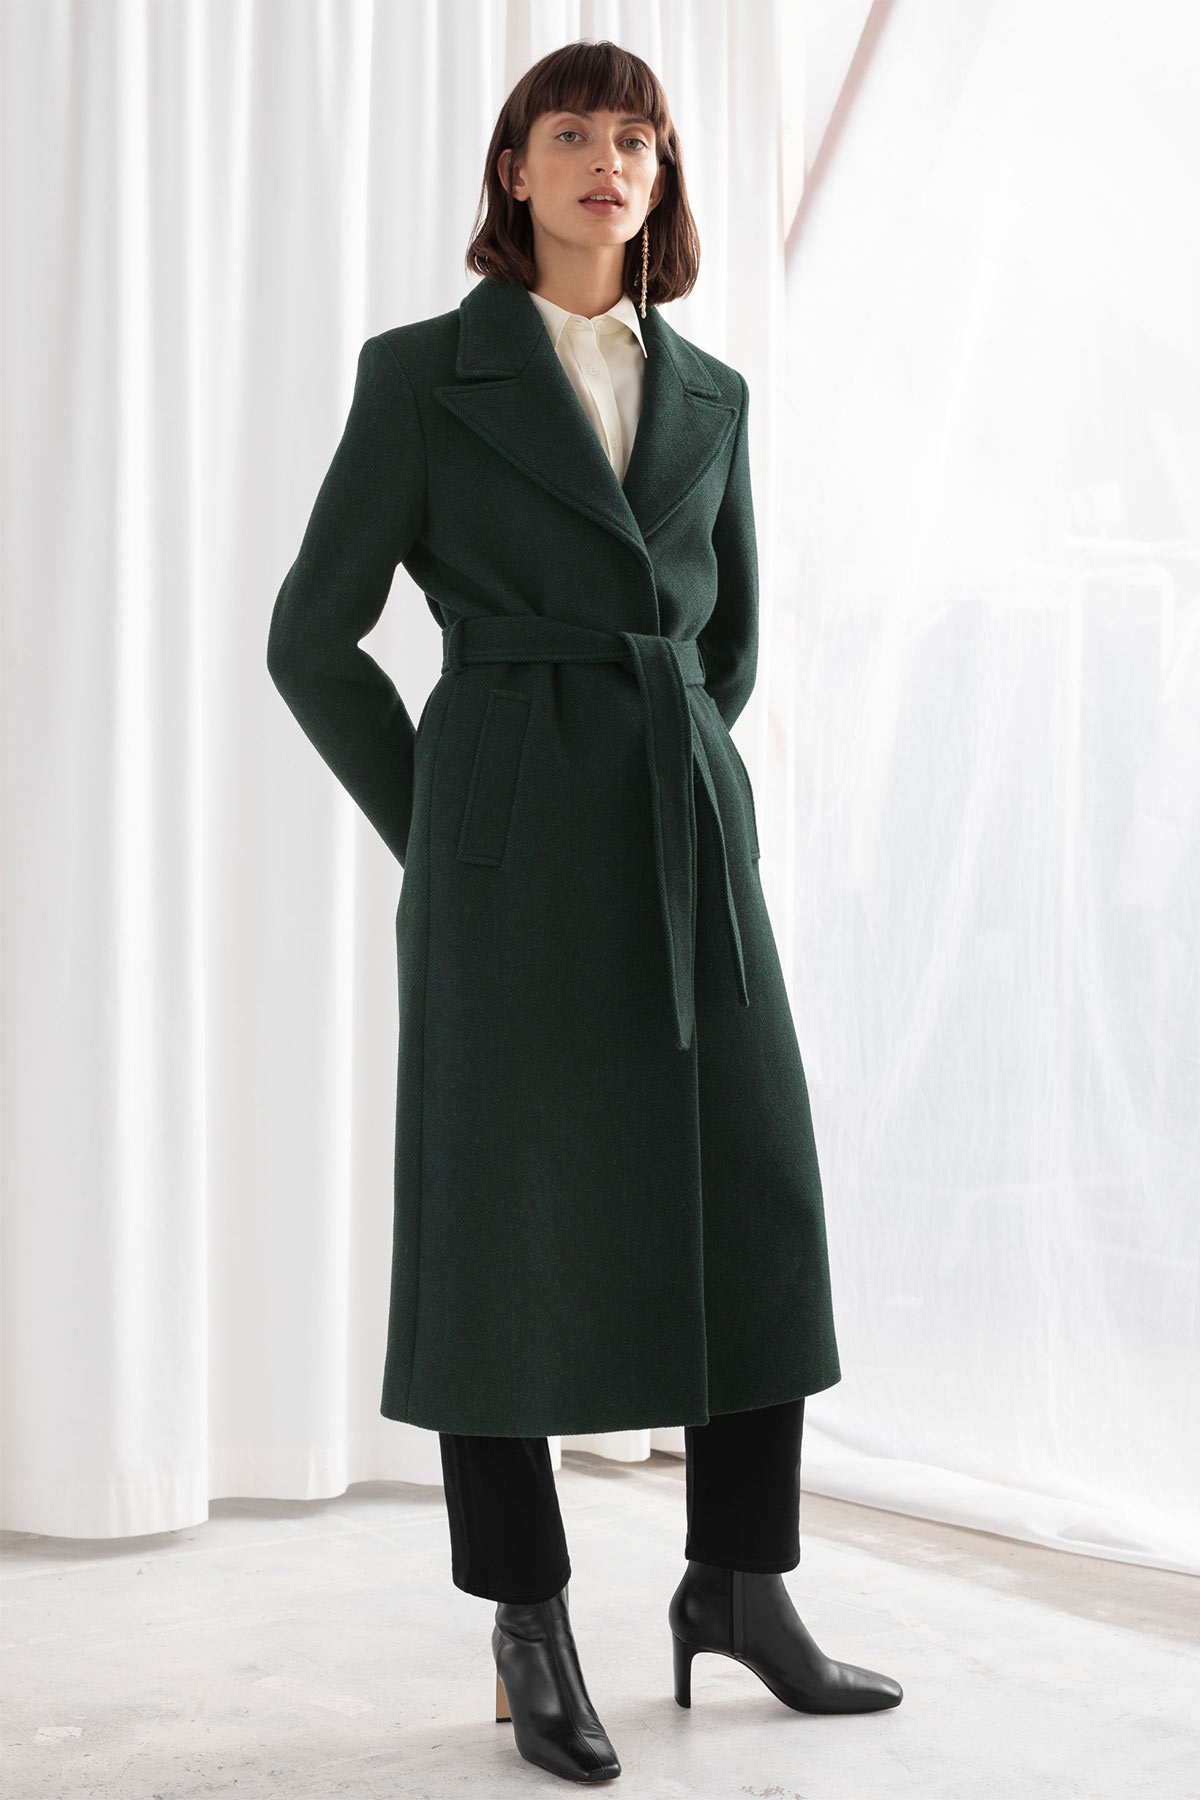 Kate Middleton Get the Look: Green Coat